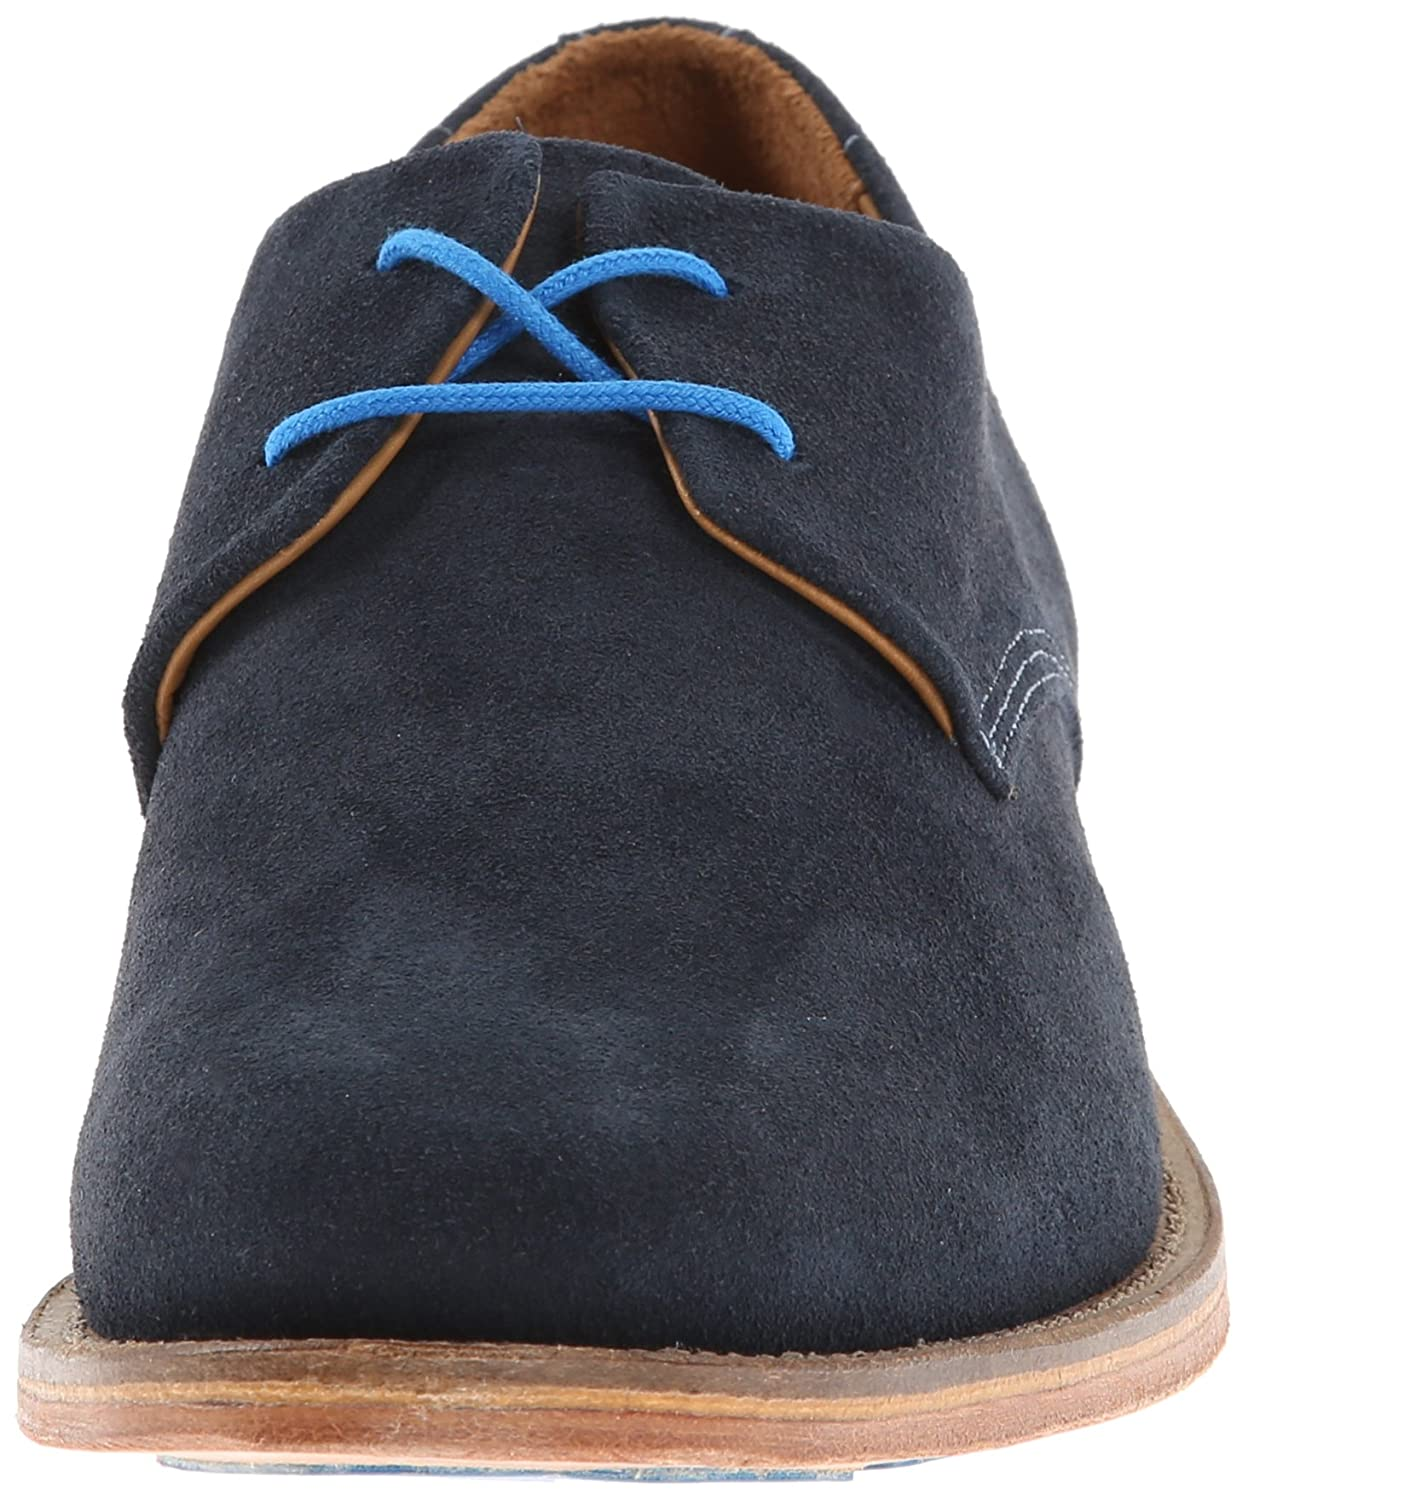 a69089a103df J Shoes Grail Men's Navy Suede Derby Shoes E7103 12 UK | 47 EU:  Amazon.co.uk: Shoes & Bags